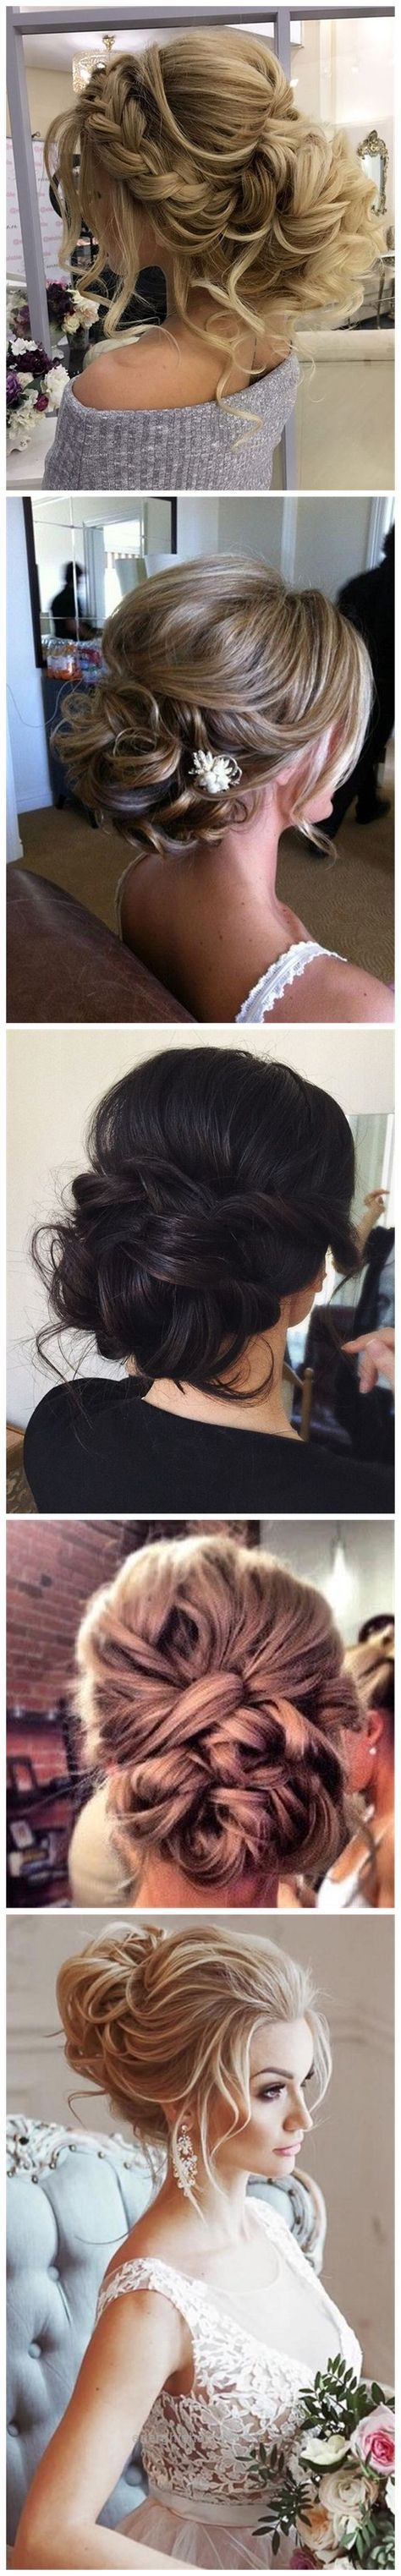 best hairstylist images on pinterest hair ideas hairstyle